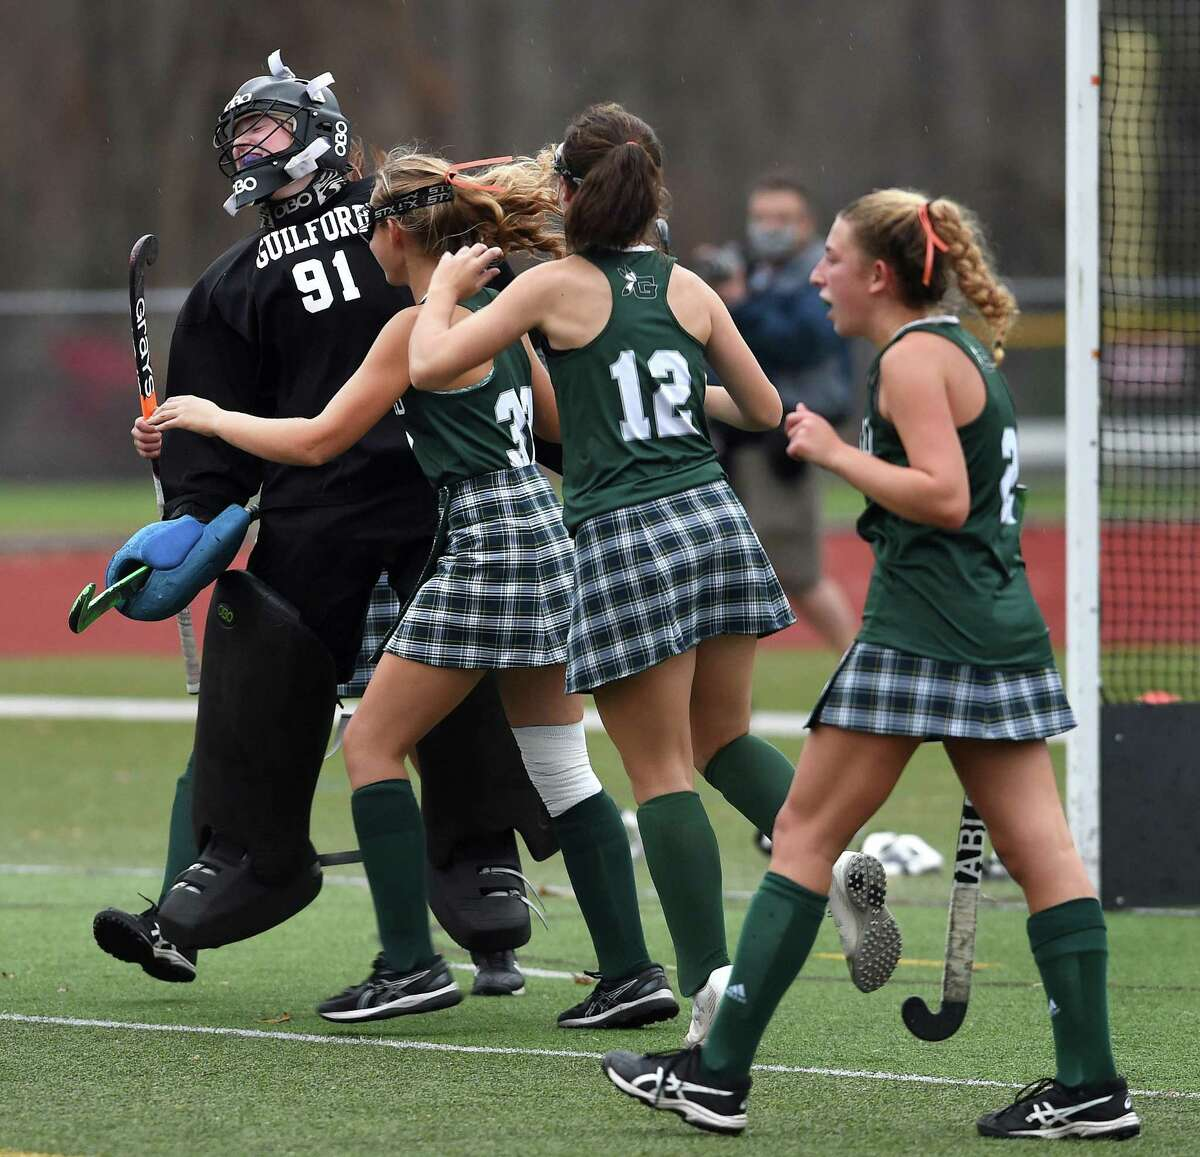 Guilford goalkeeper Eve Young, left, celebrates with teammates after its 5-1 win over Cheshire in the SCC Division A field hockey championship at Cheshire High on Wednesday.